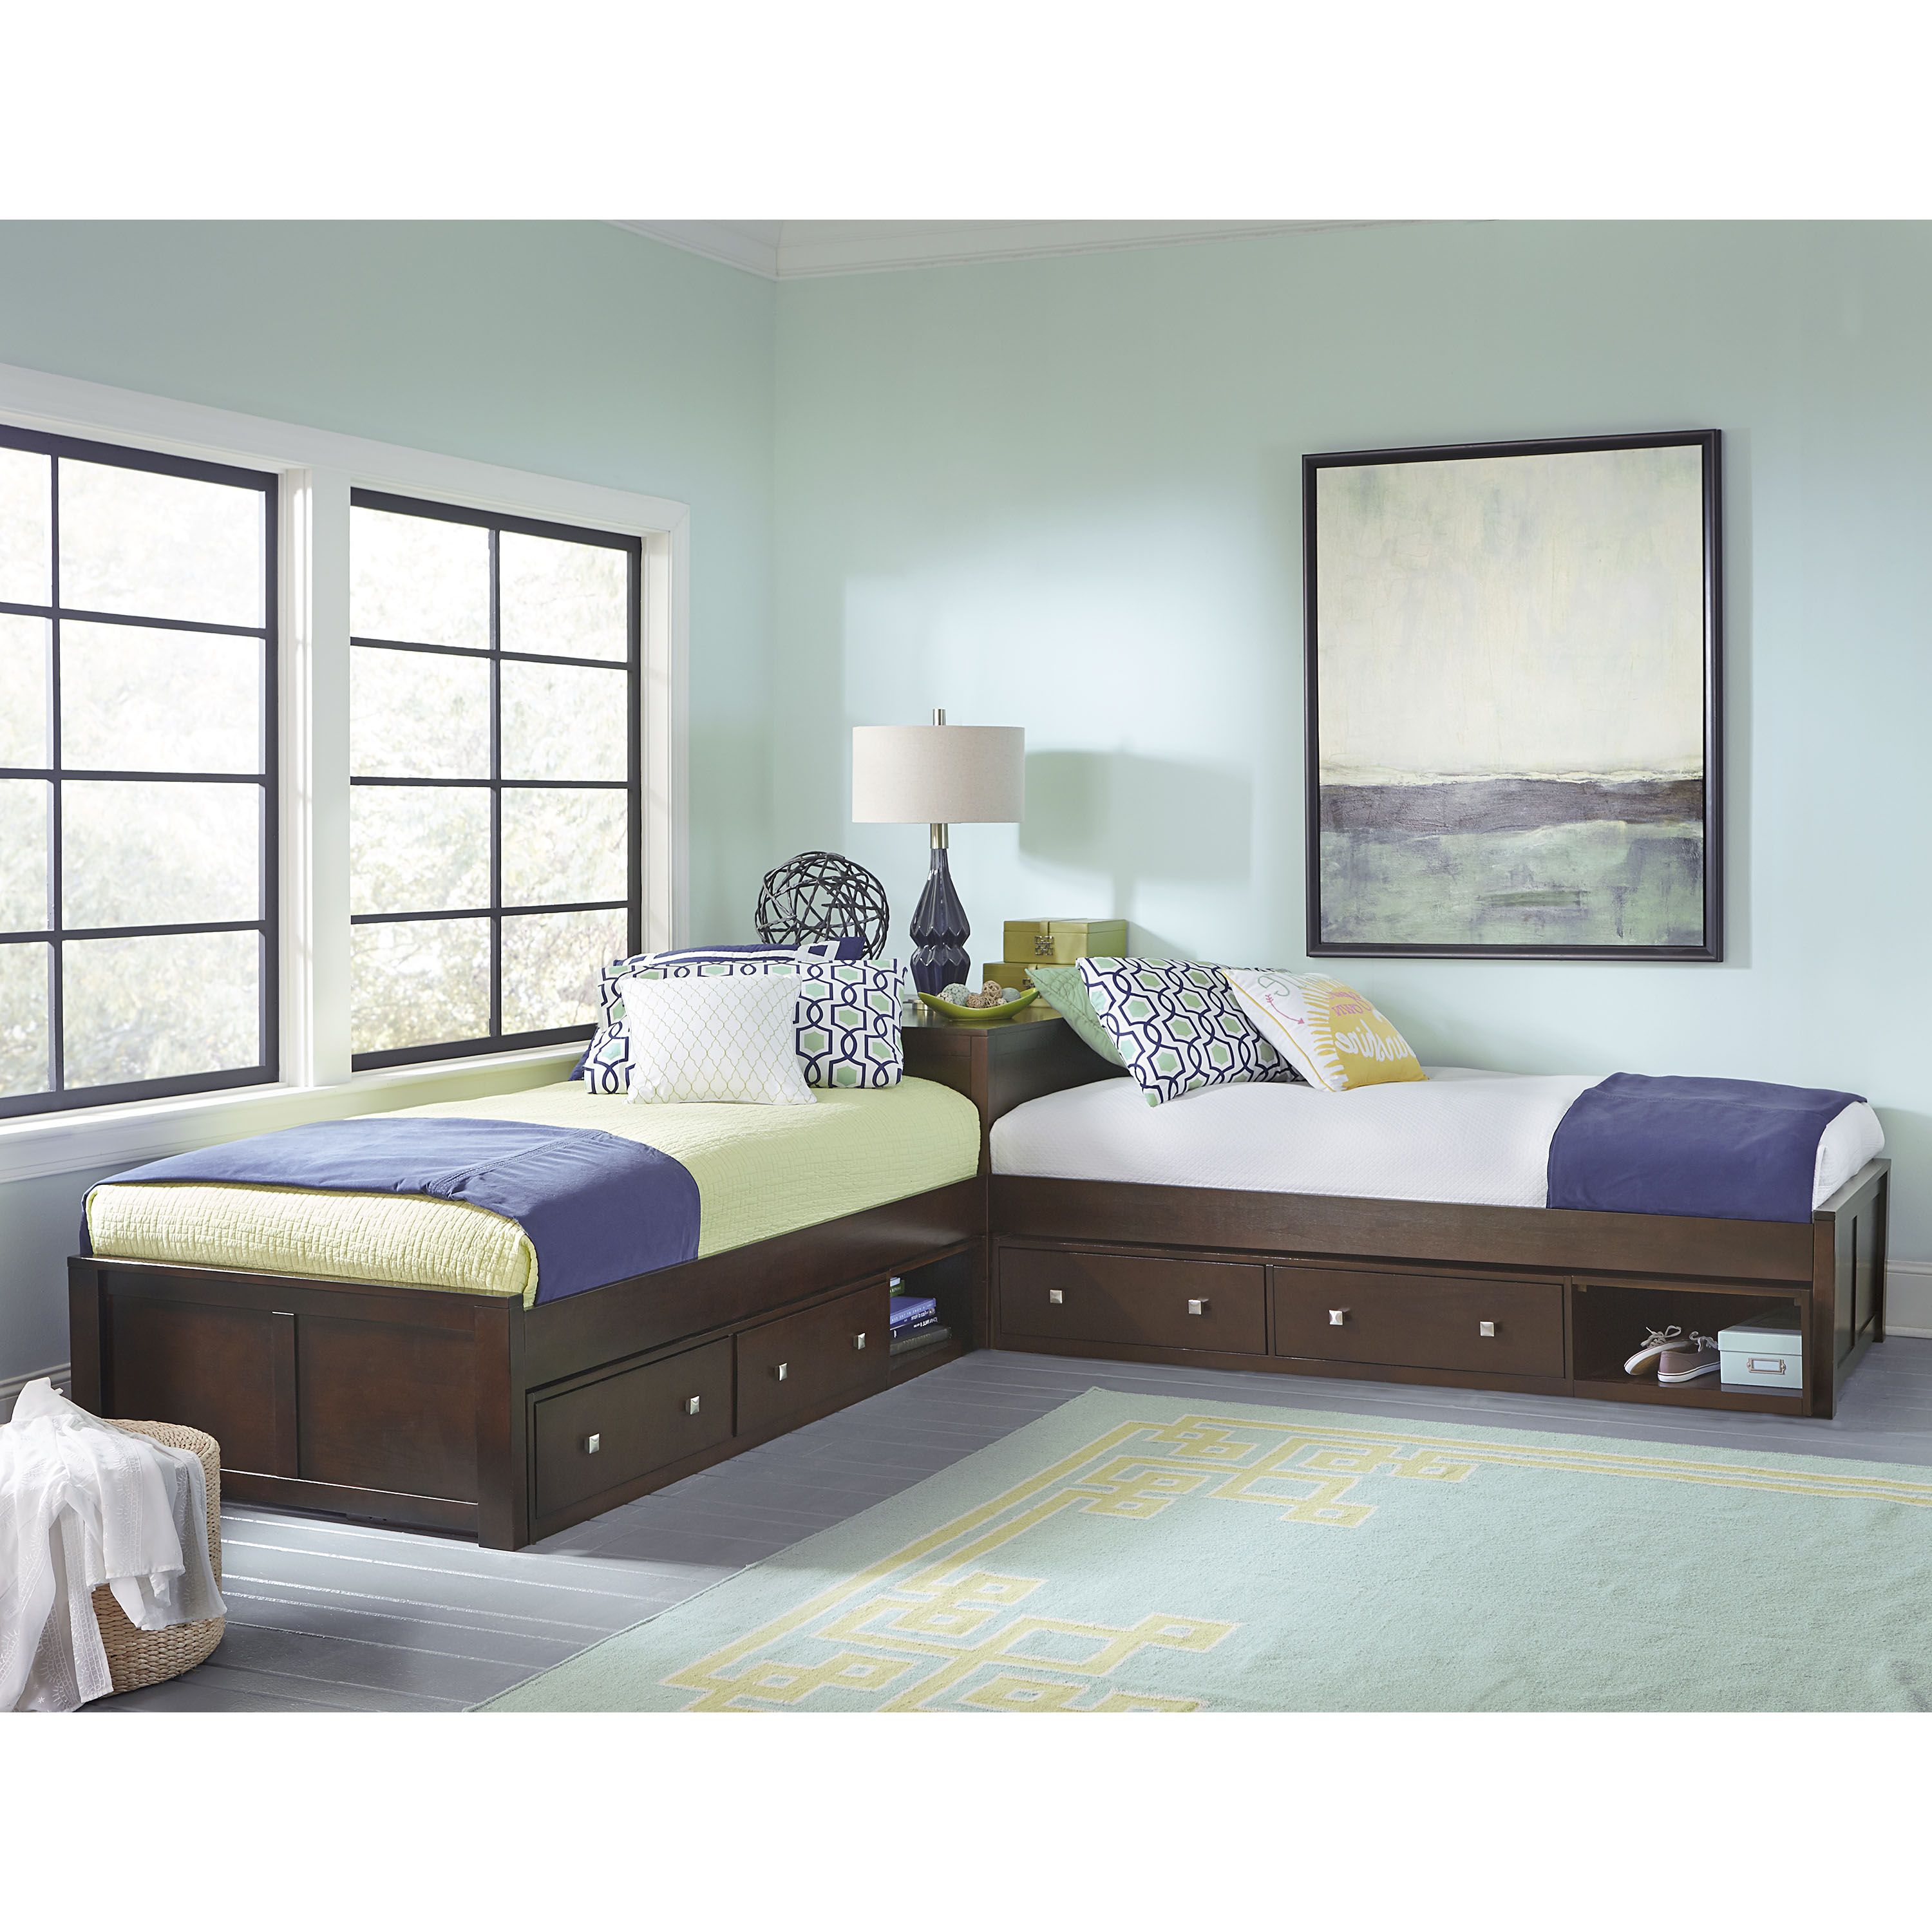 Home L Shaped Beds L Shaped Twin Beds Bedroom Decor